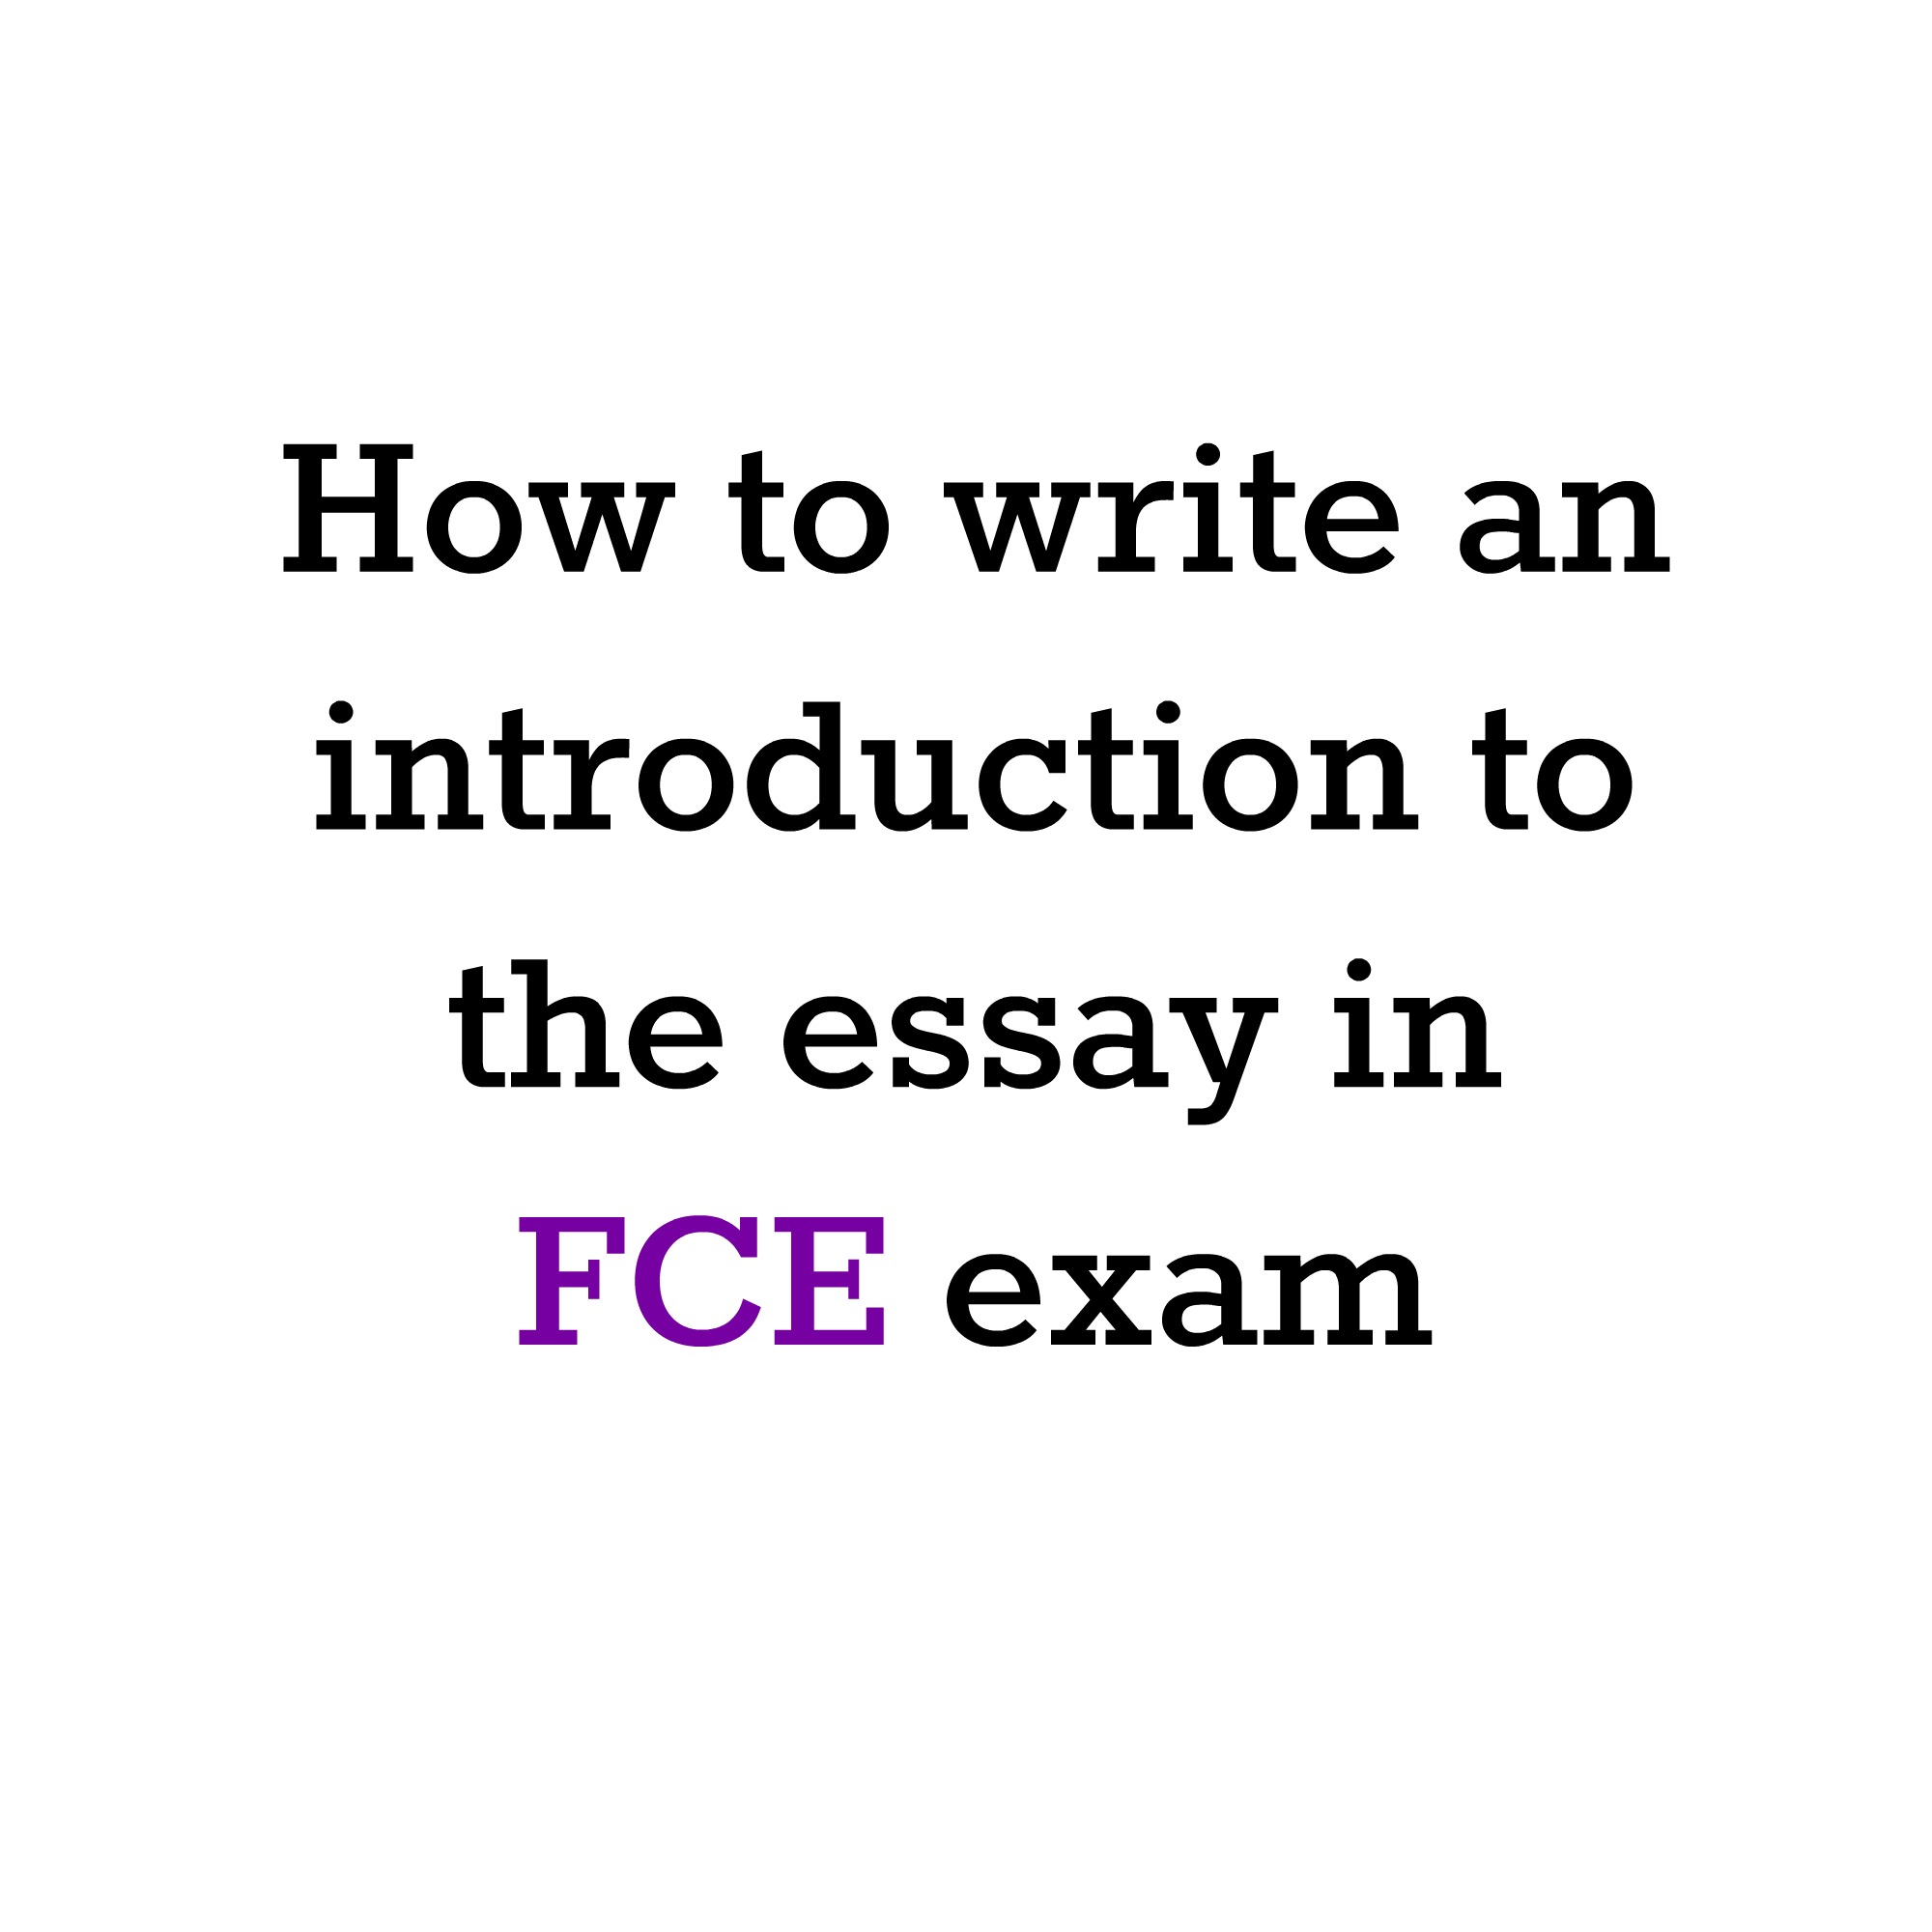 fce writing part essay a english exam help how to write an introduction to the essay in fce exam